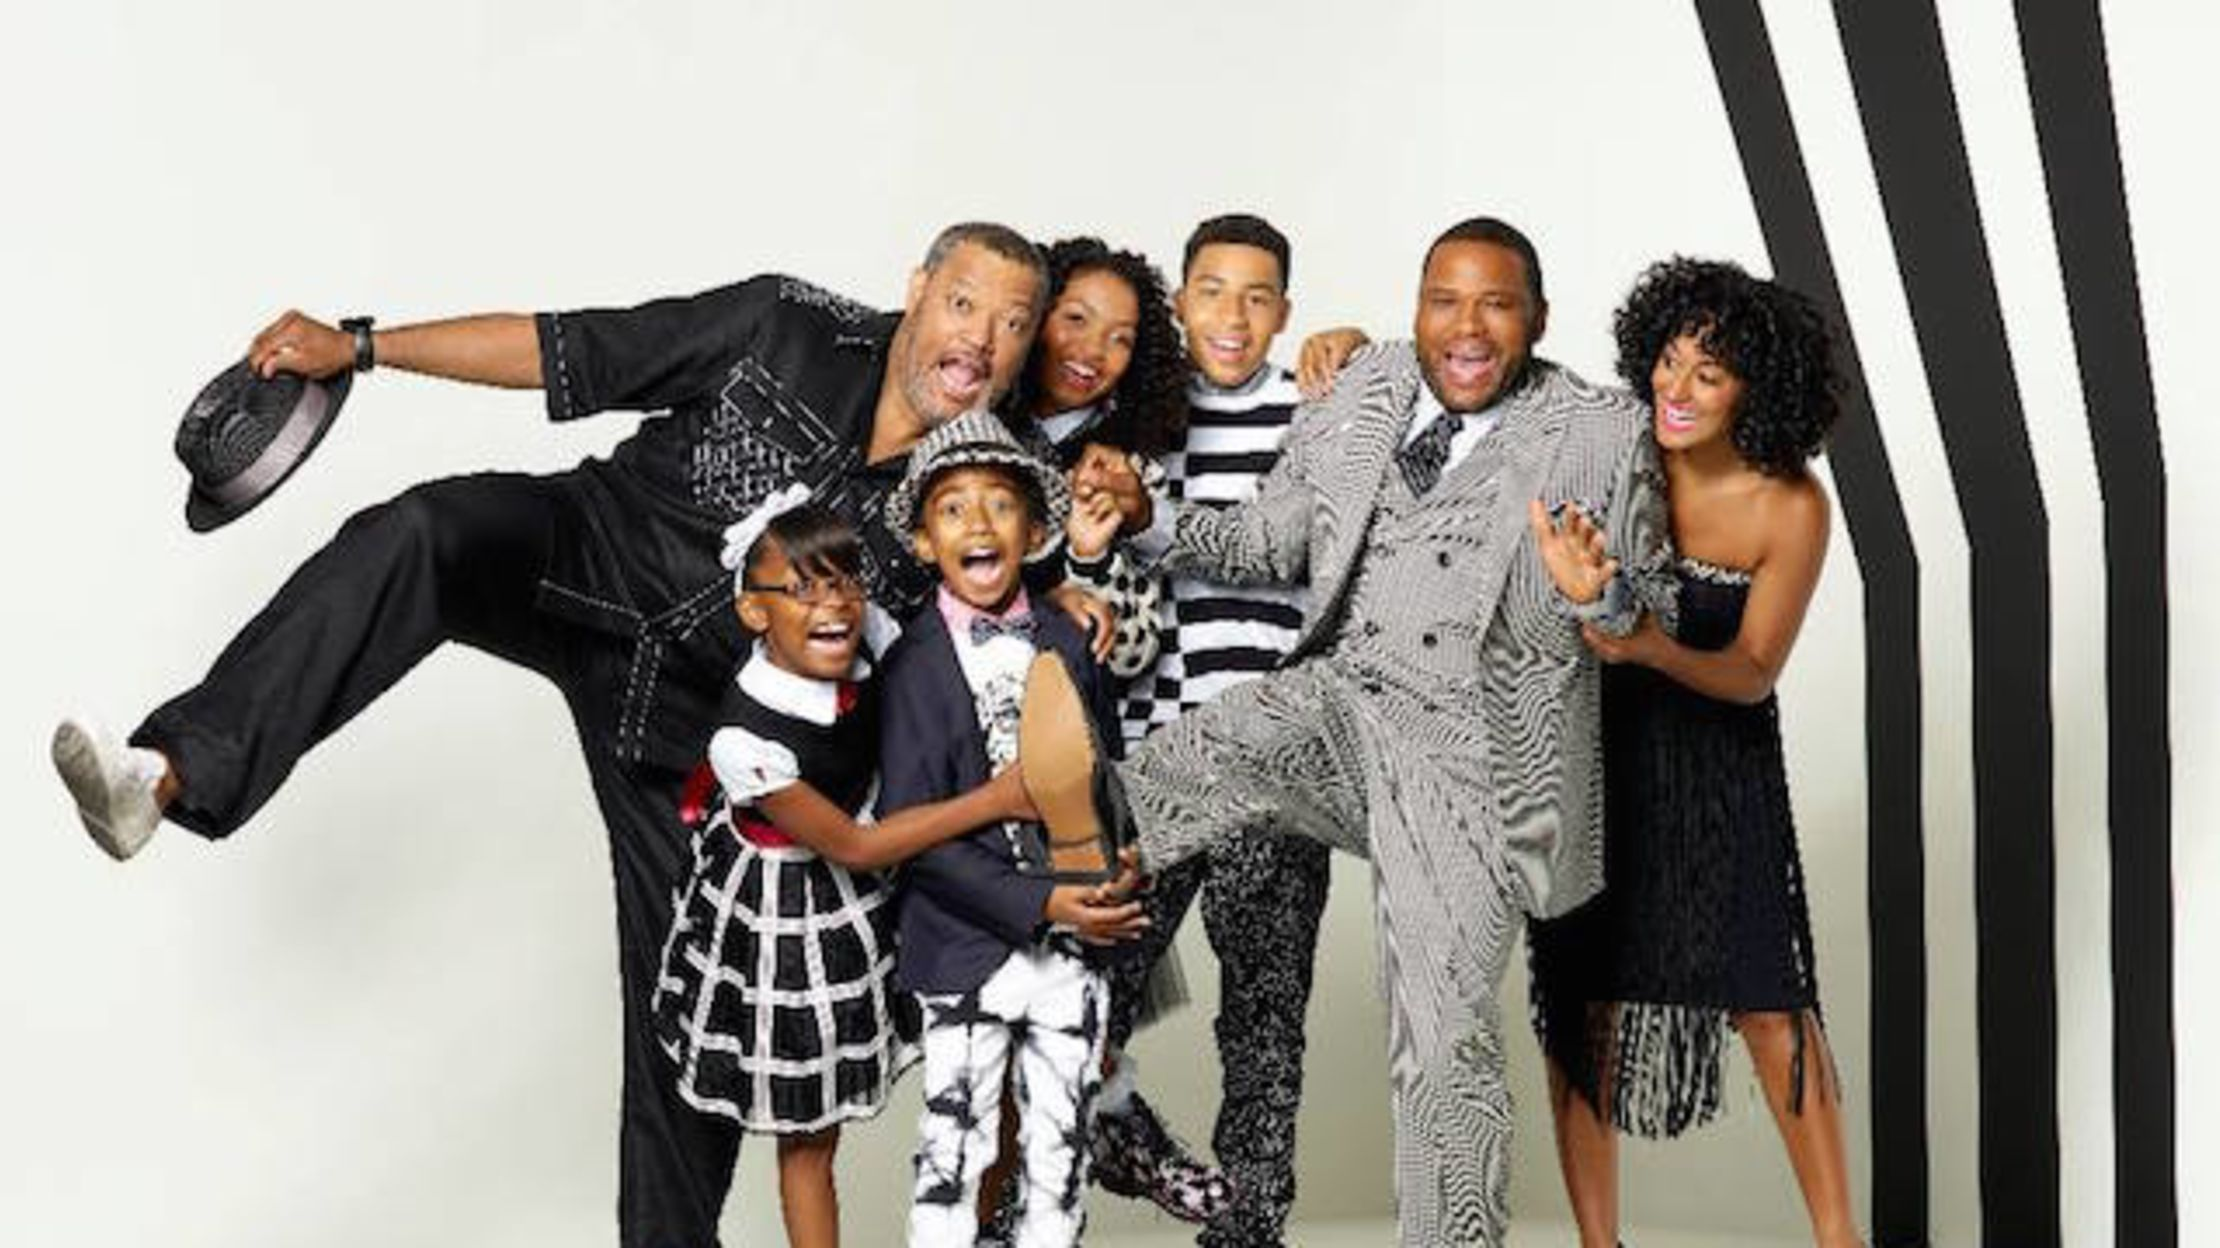 10 Fearless Facts About 'Black-ish' | Mental Floss